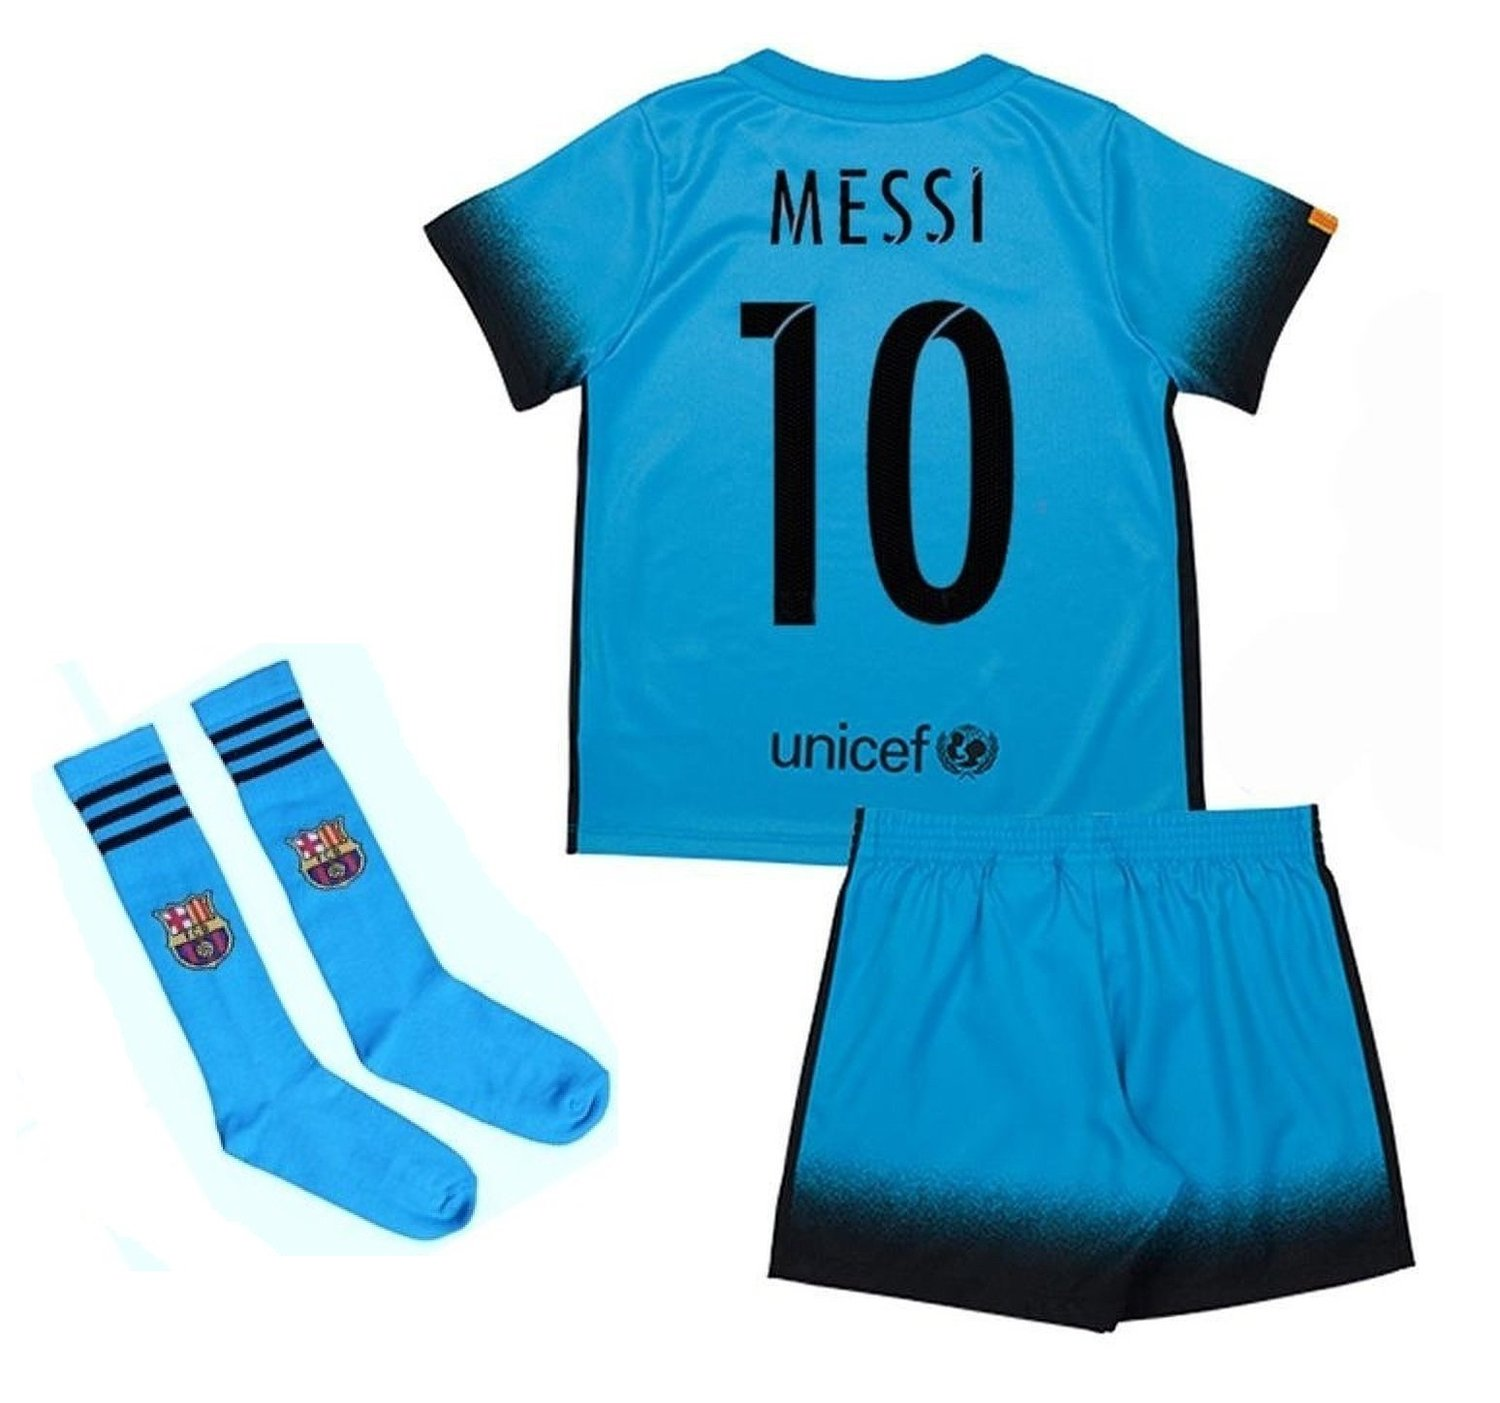 eeff8efa119 Get Quotations · New Barcelona Messi Away Blue Soccer Footfall Jersey set  uniform for Youth Kids